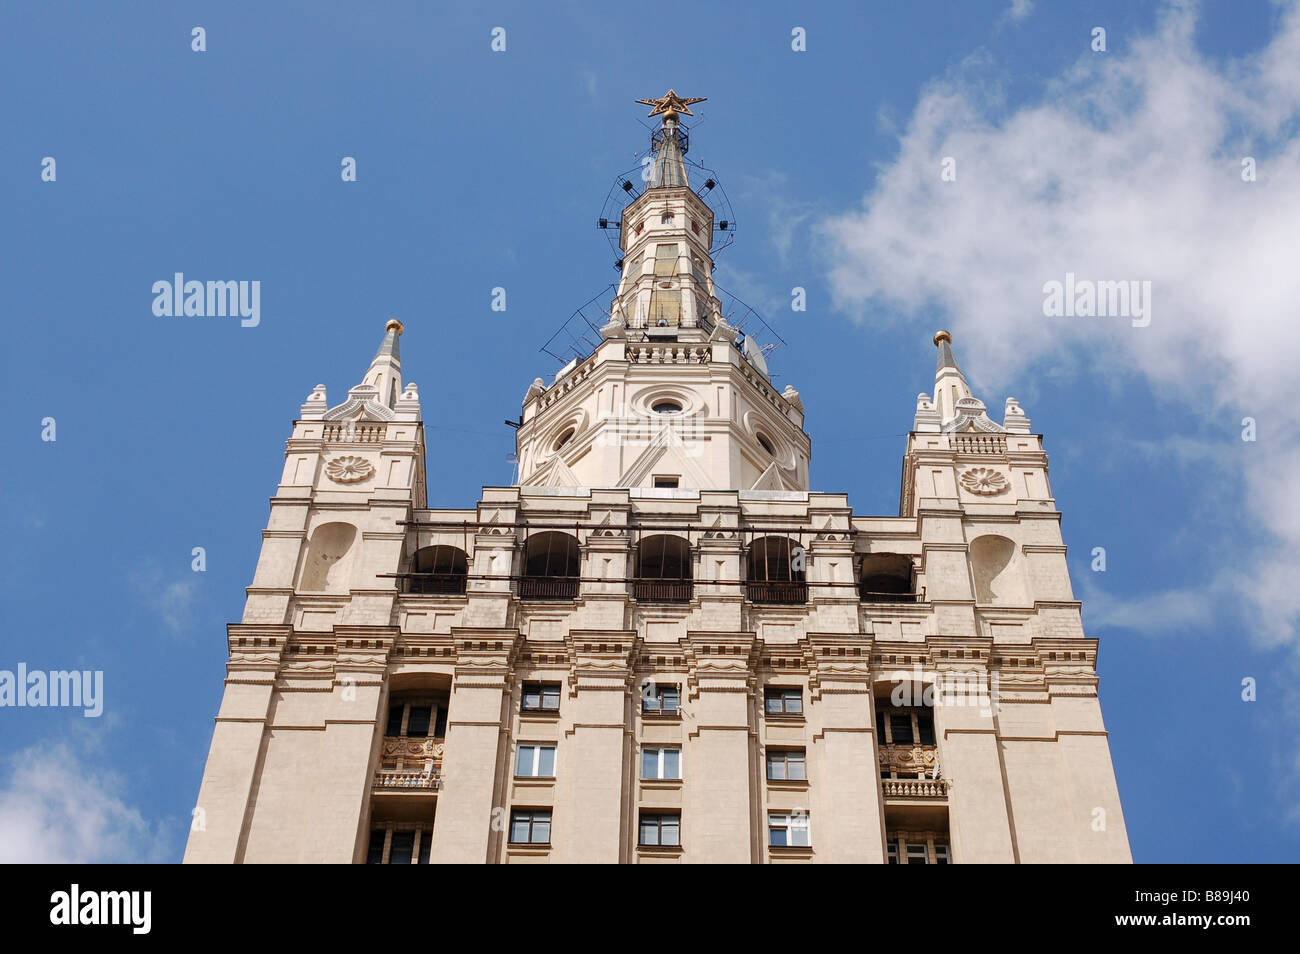 Stalinist architecture Kudrinskaya Square building Moscow Russia - Stock Image